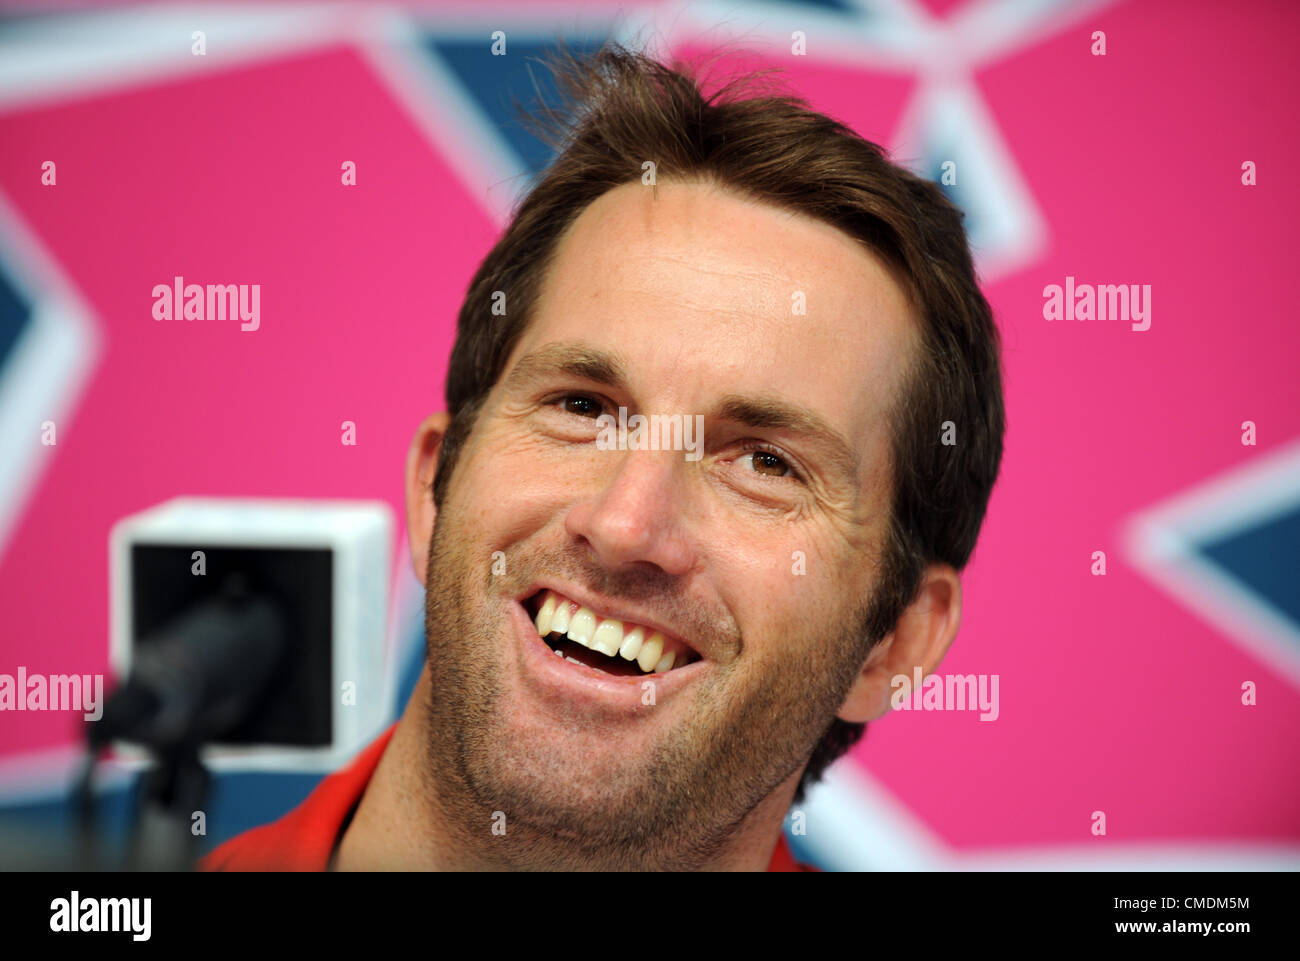 Ben Ainslie at Olympic press conference - Stock Image